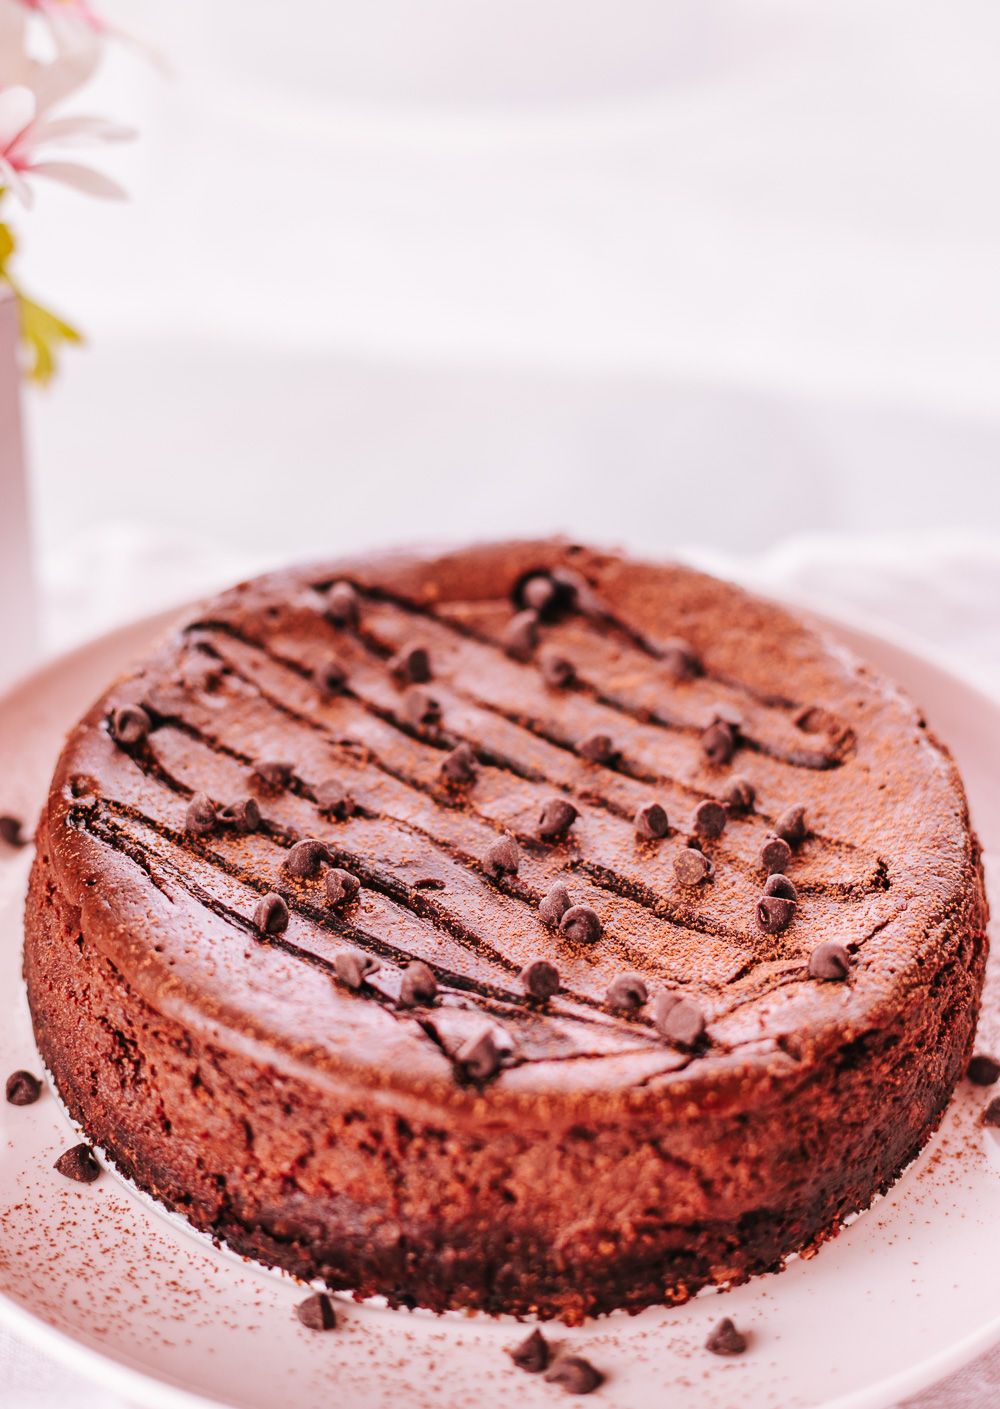 HEALTHY CHOCOLATE CHEESECAKE RECIPE! IT'S LOW-CALORIE, NATURALLY HIGH-PROTEIN, YUMMY AND GOOD FOR YOU TREAT! #healthycheesecake #chocolatecheesecake #healthychocolatecheesecake #healthydessert #healthyeasydessert